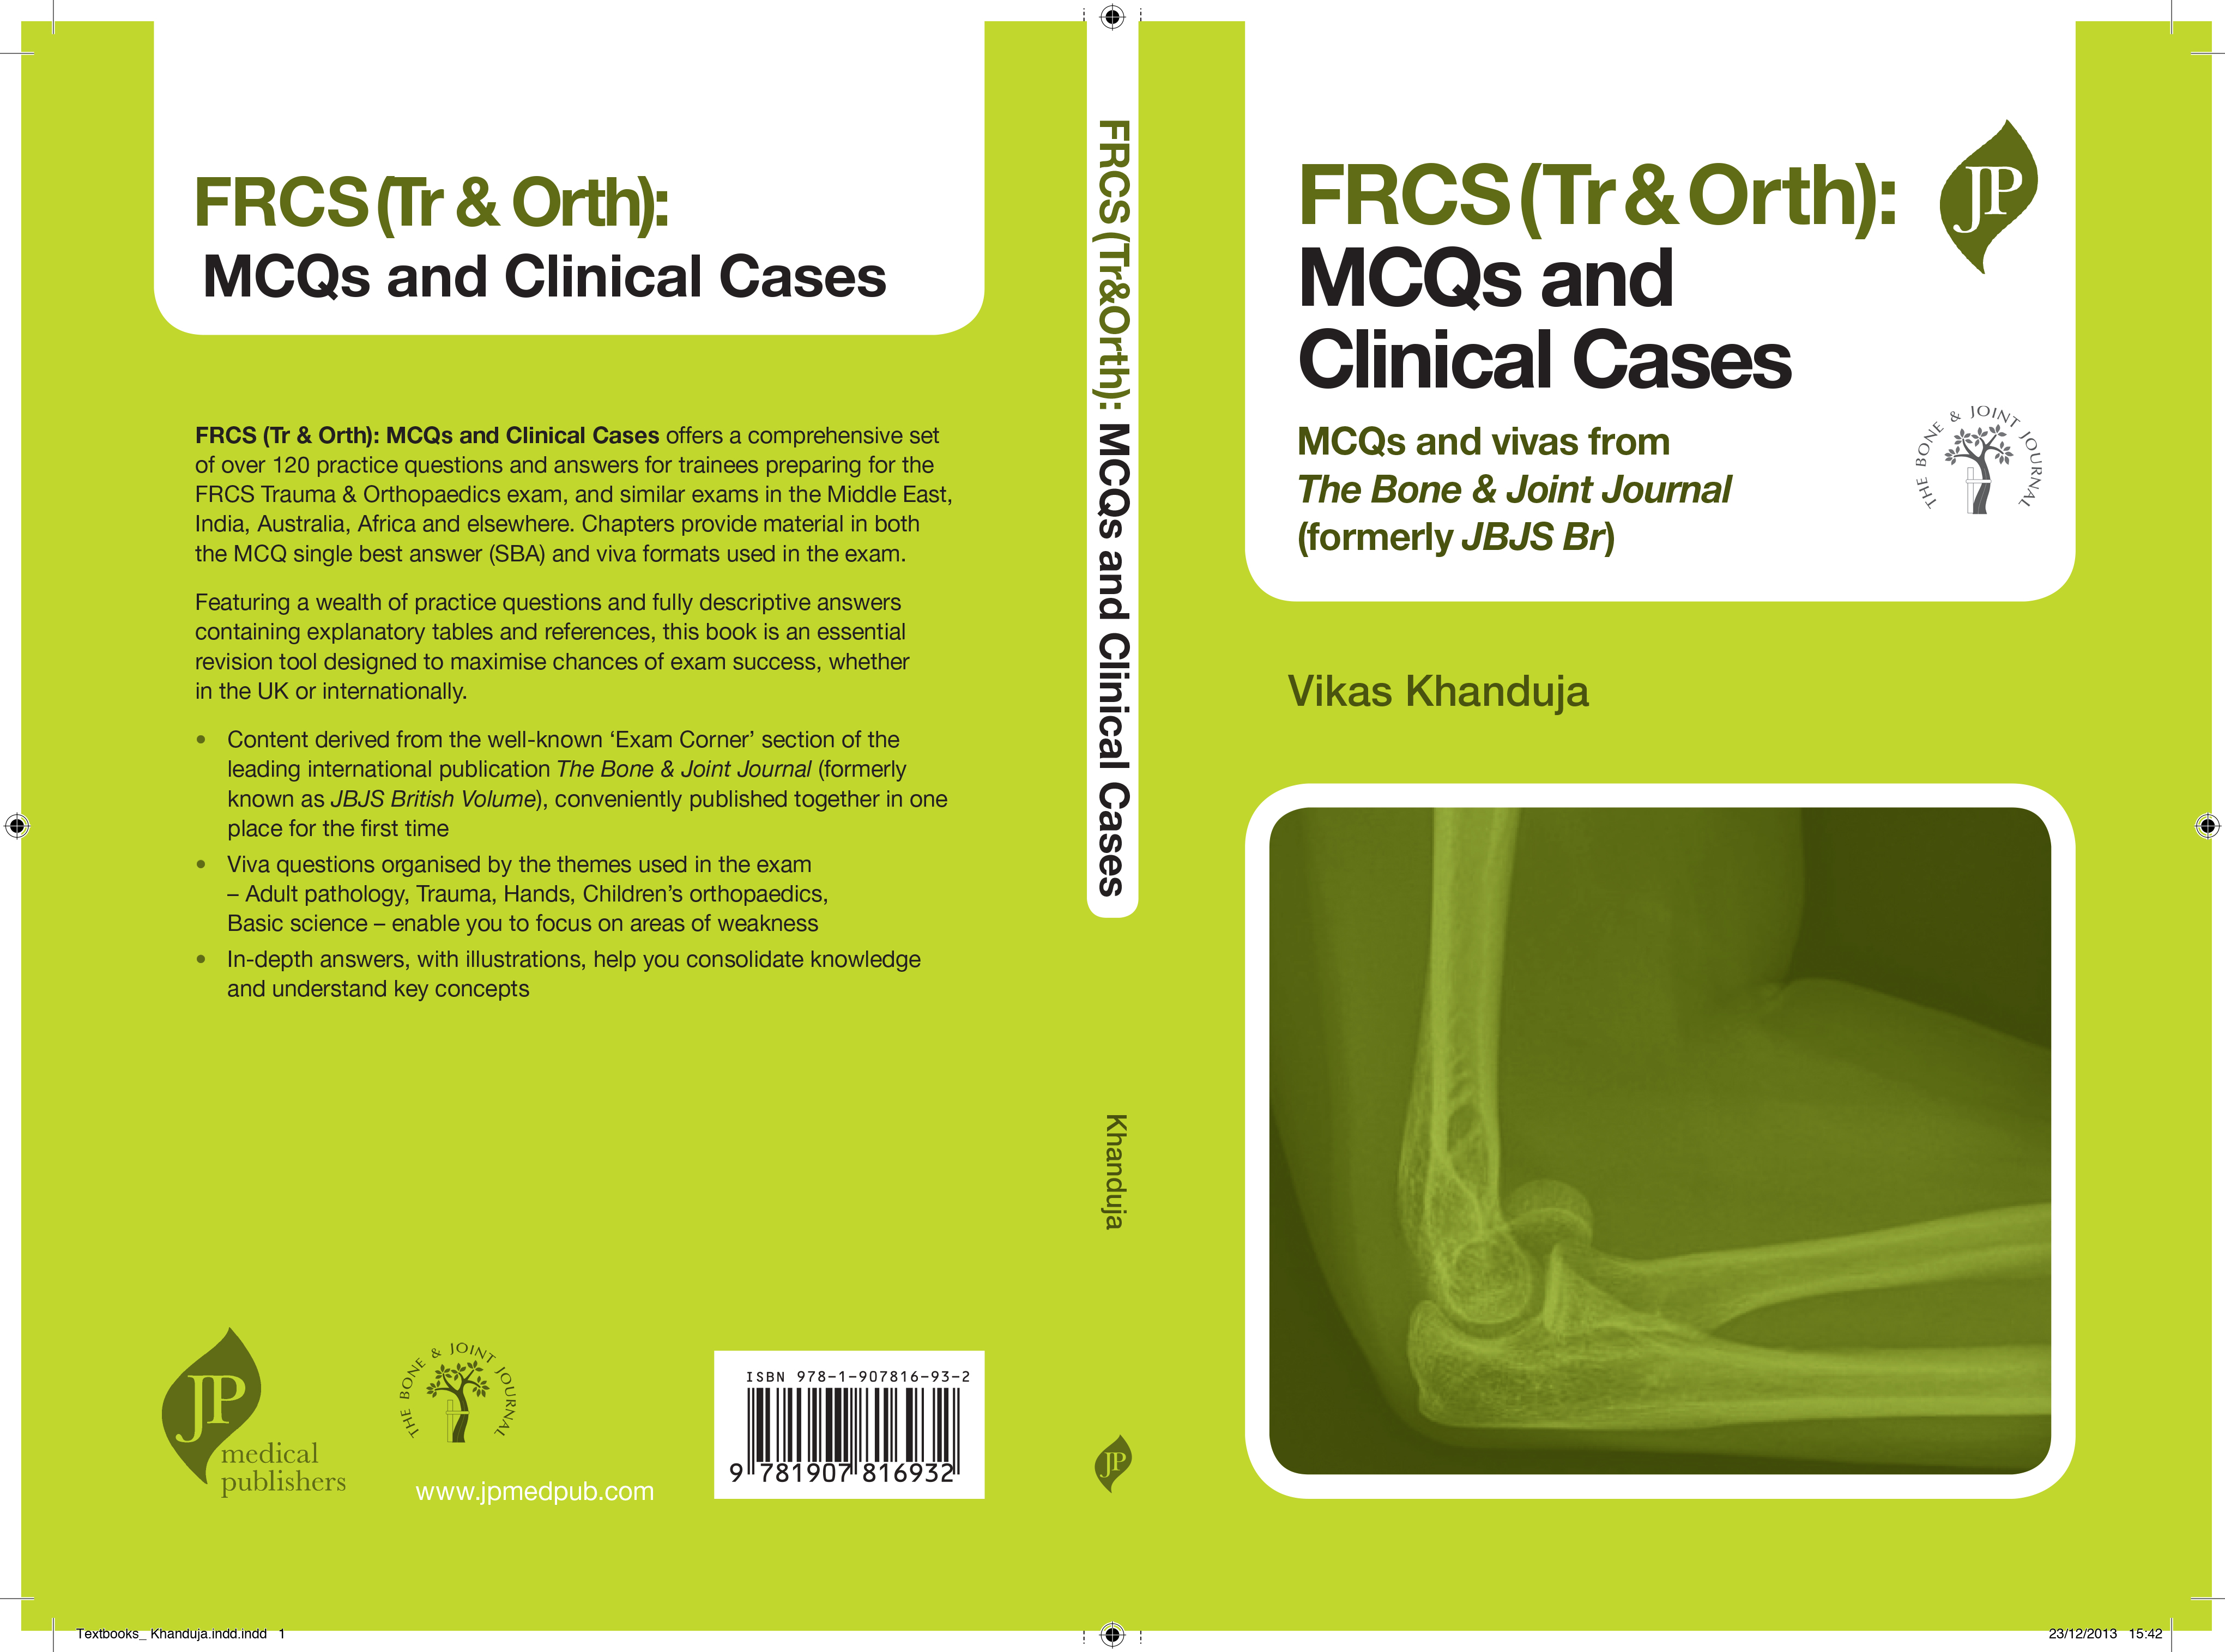 FRCS (Tr&Orth) MCQs and Clinical Cases - Orthopaedic Product